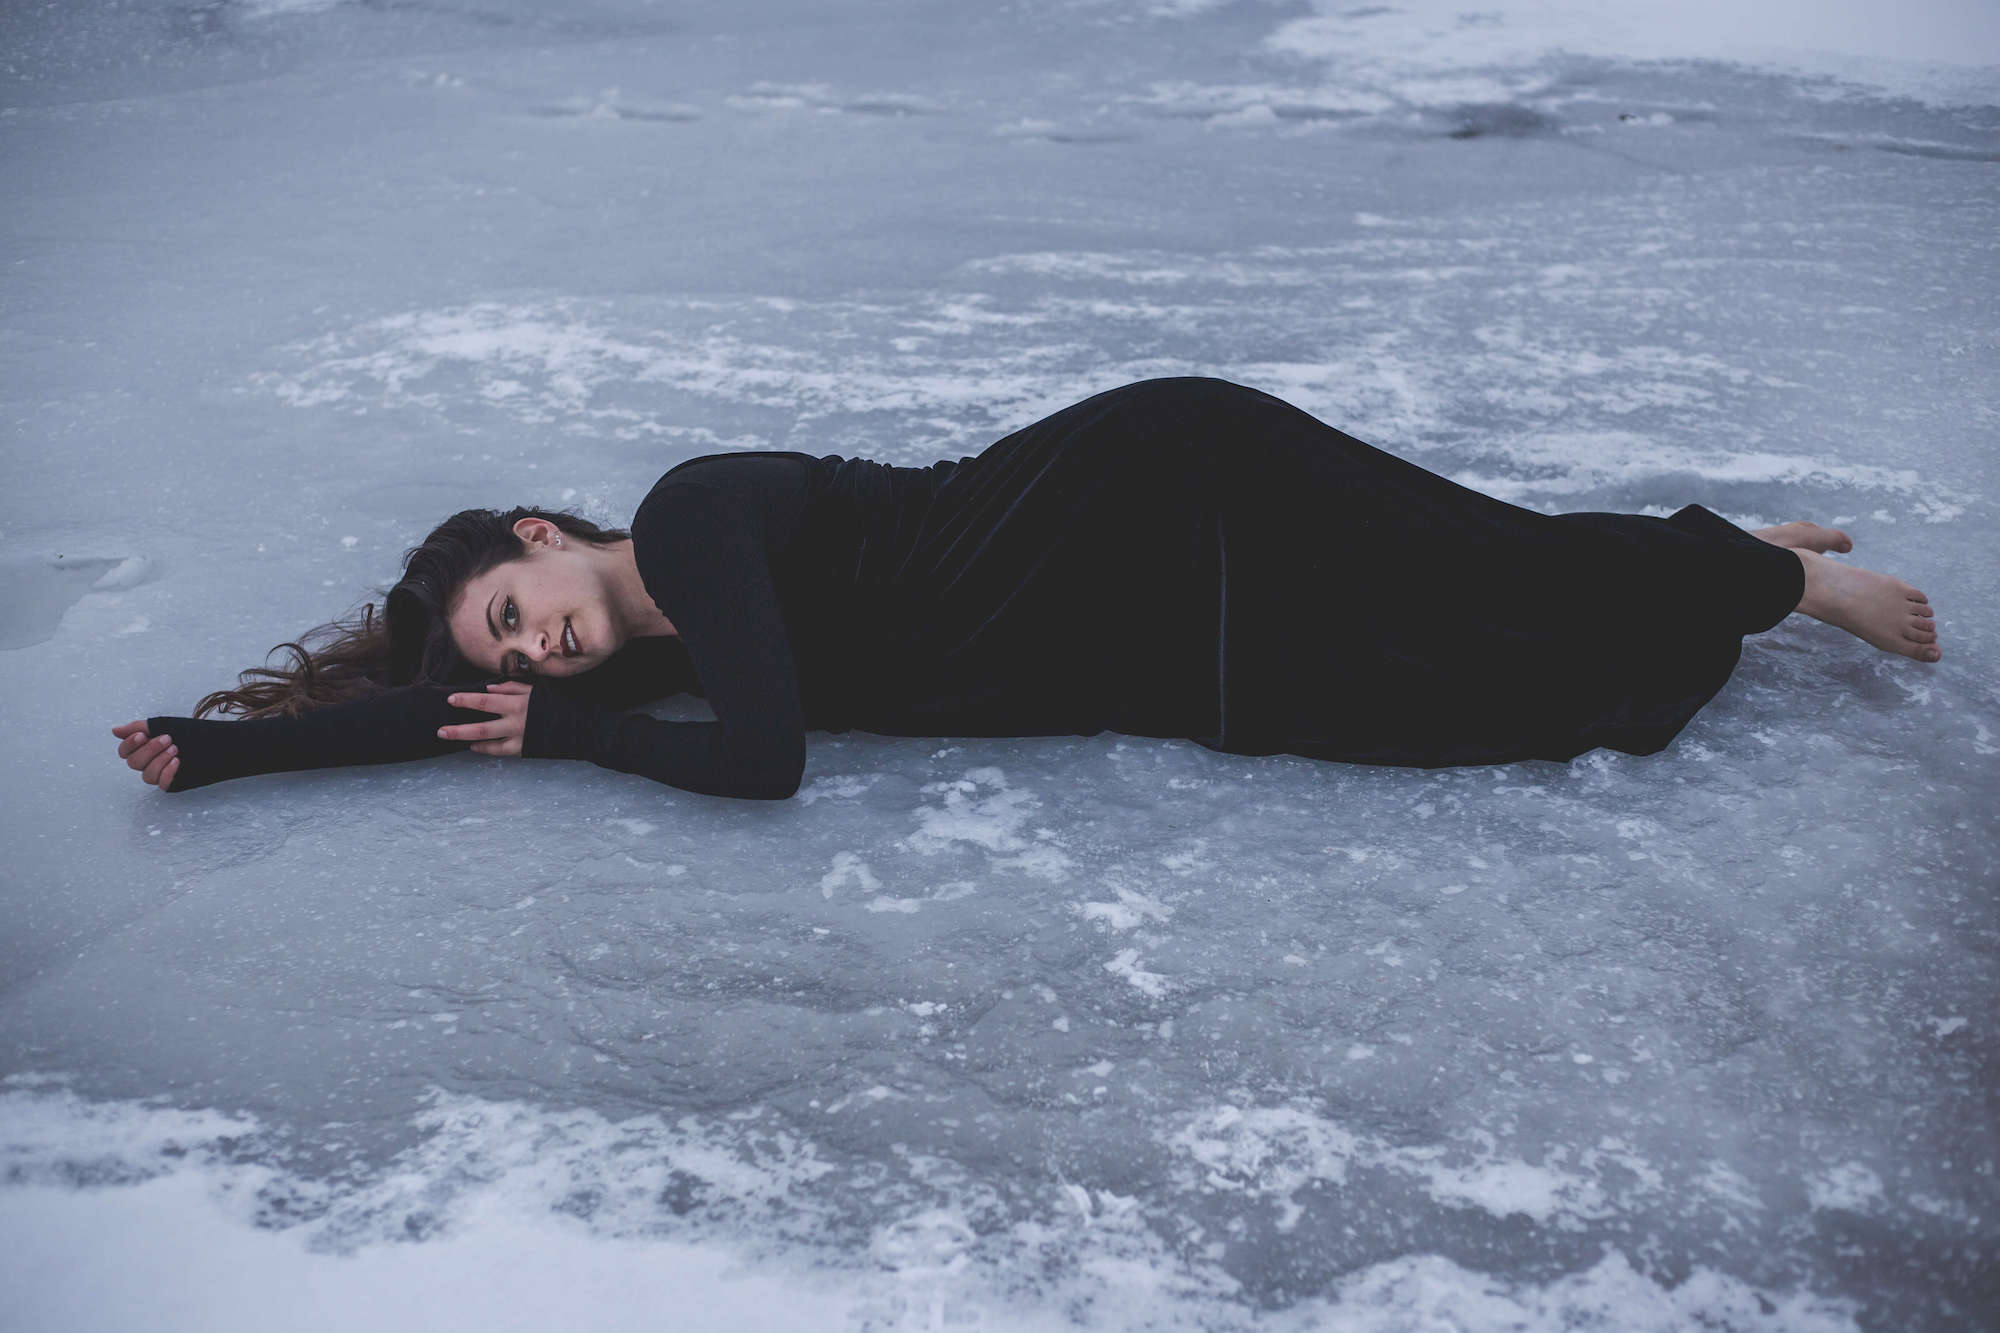 Kelsey laying on the ice in a black dress